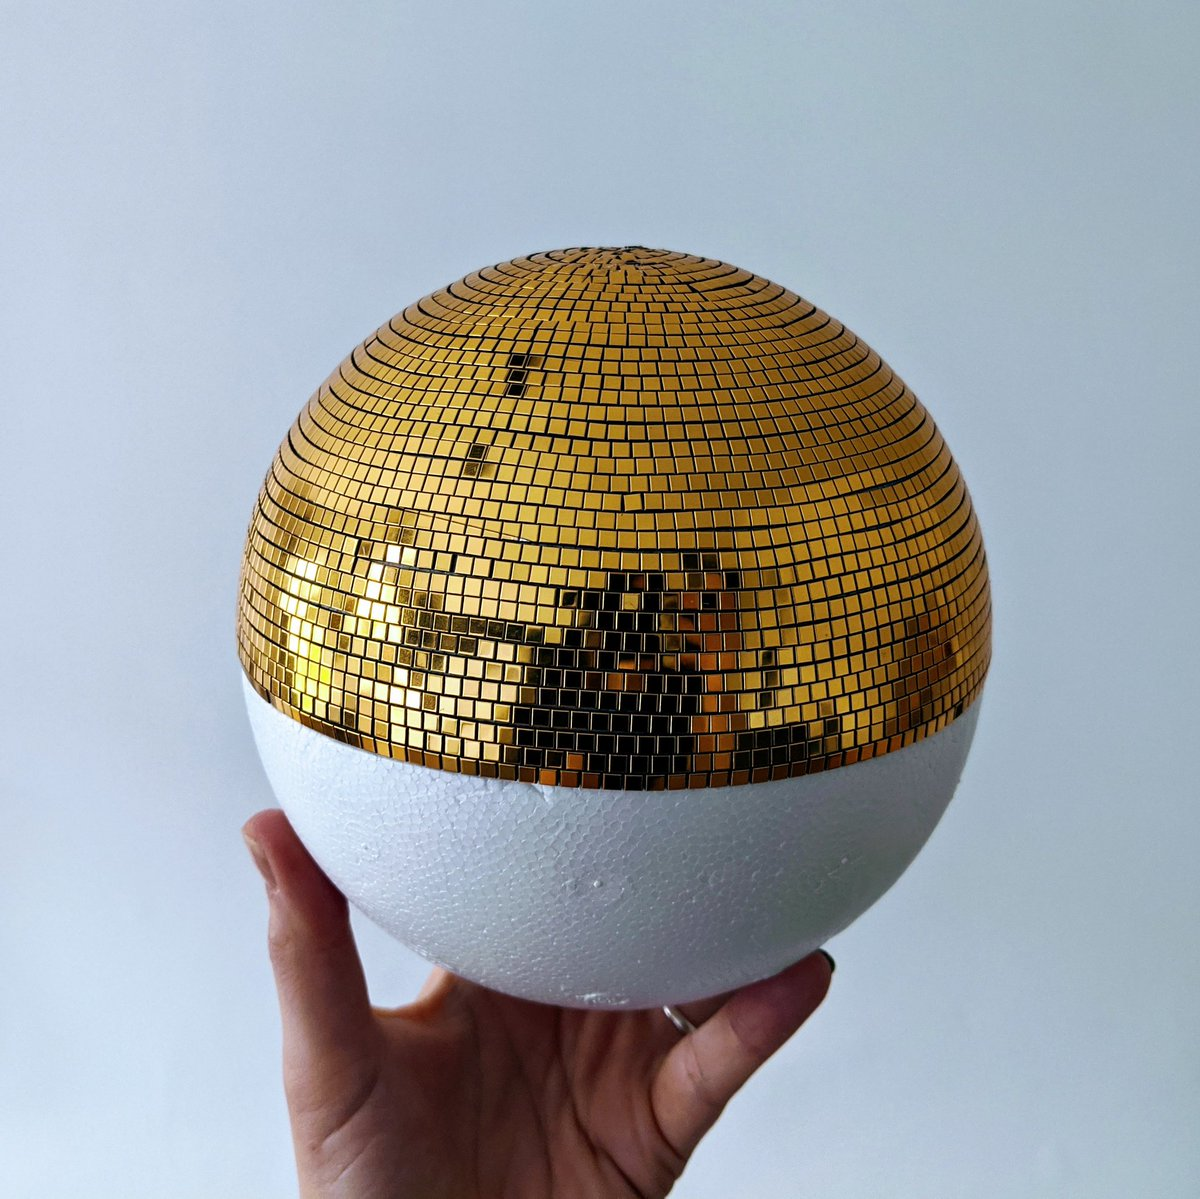 My golden disco ball is half finished. I seriously underestimated how much work this was going to be... https://t.co/jBHjlAijDM